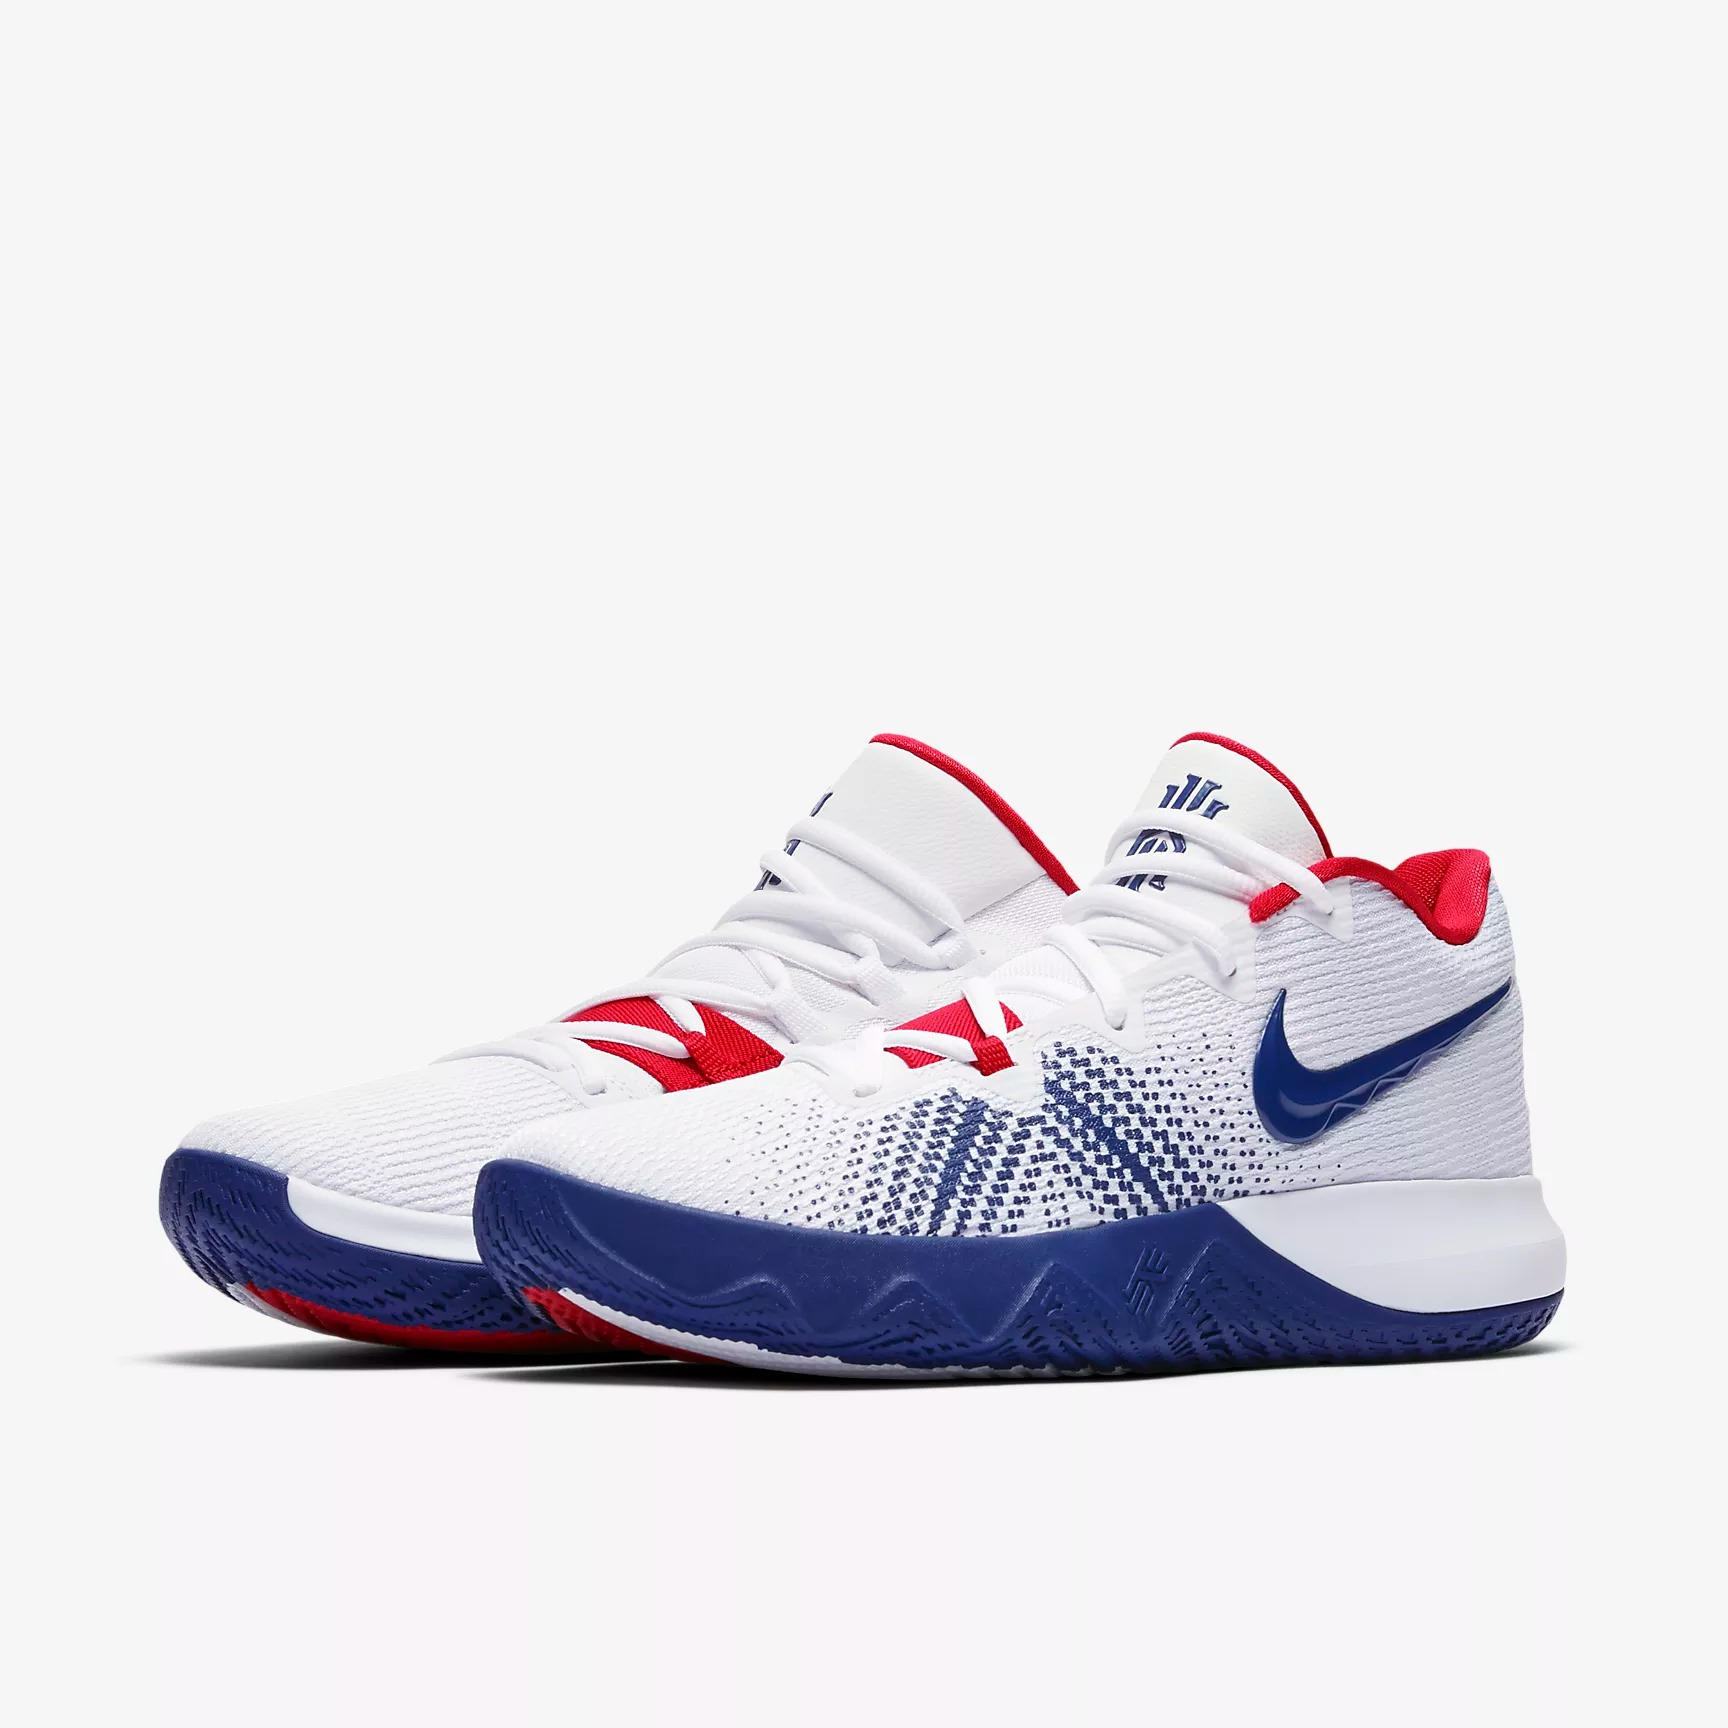 Nike Kyrie Flytrap Basketball Shoes - BASKETBALL SHOES NIKE Basketball Shoes  - Superfanas.lt f6798bc01c2f